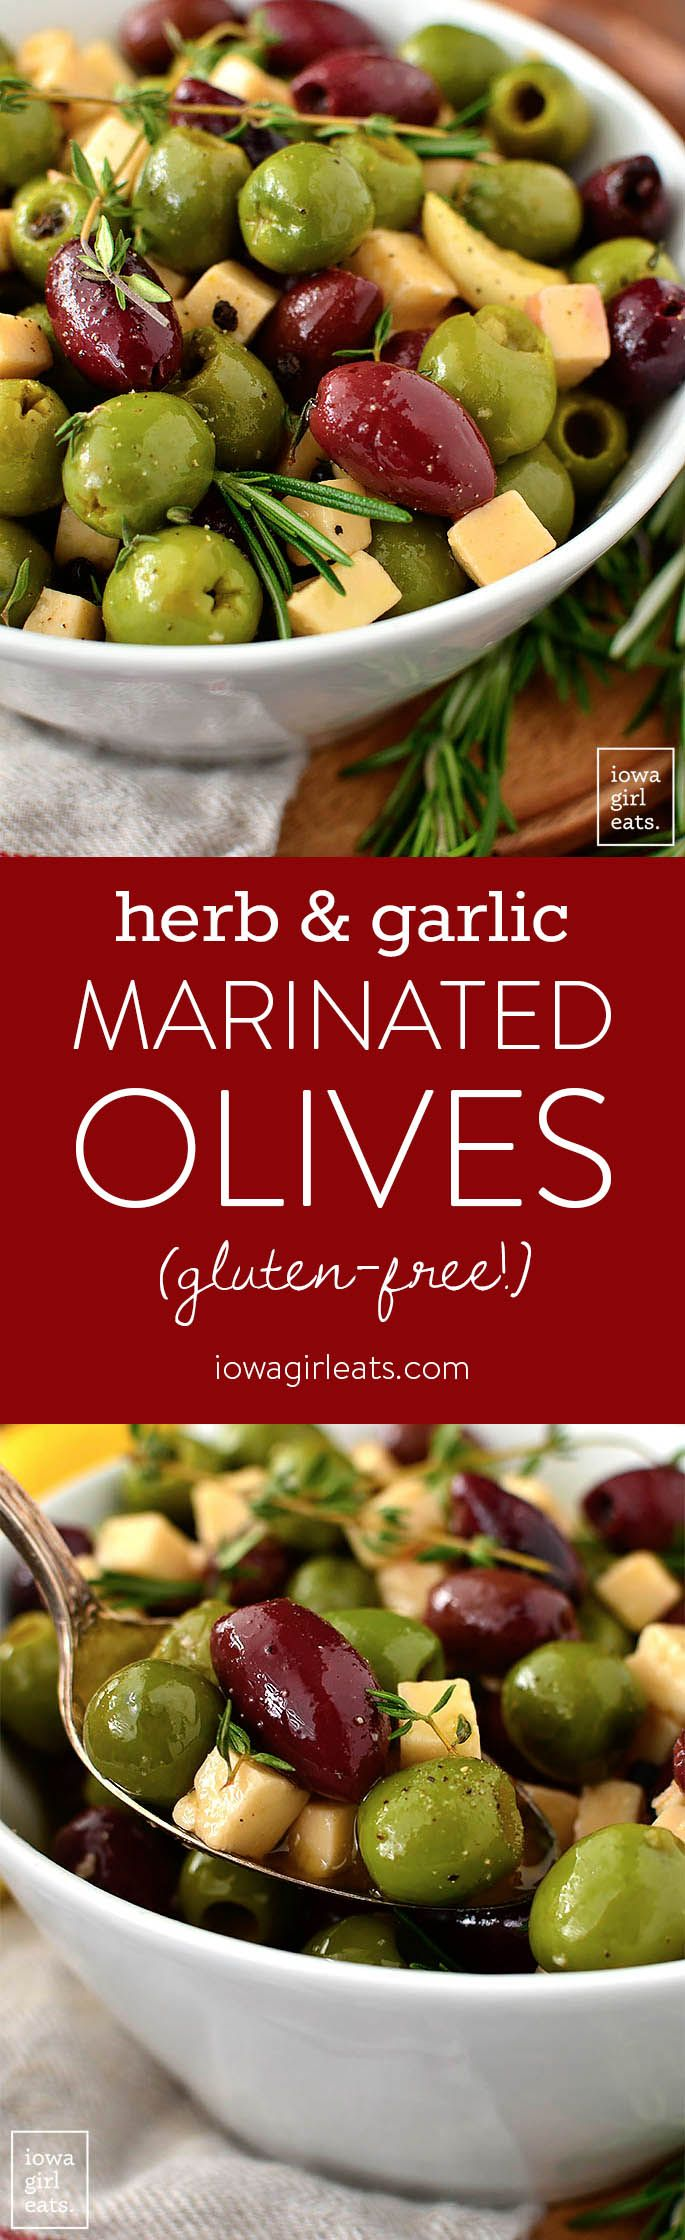 Herb and Garlic Marinated Olives are an easy yet impressive, gluten-free appetizer recipe you can whip together several days ahead of a party or get together.   iowagirleats.com #glutenfree